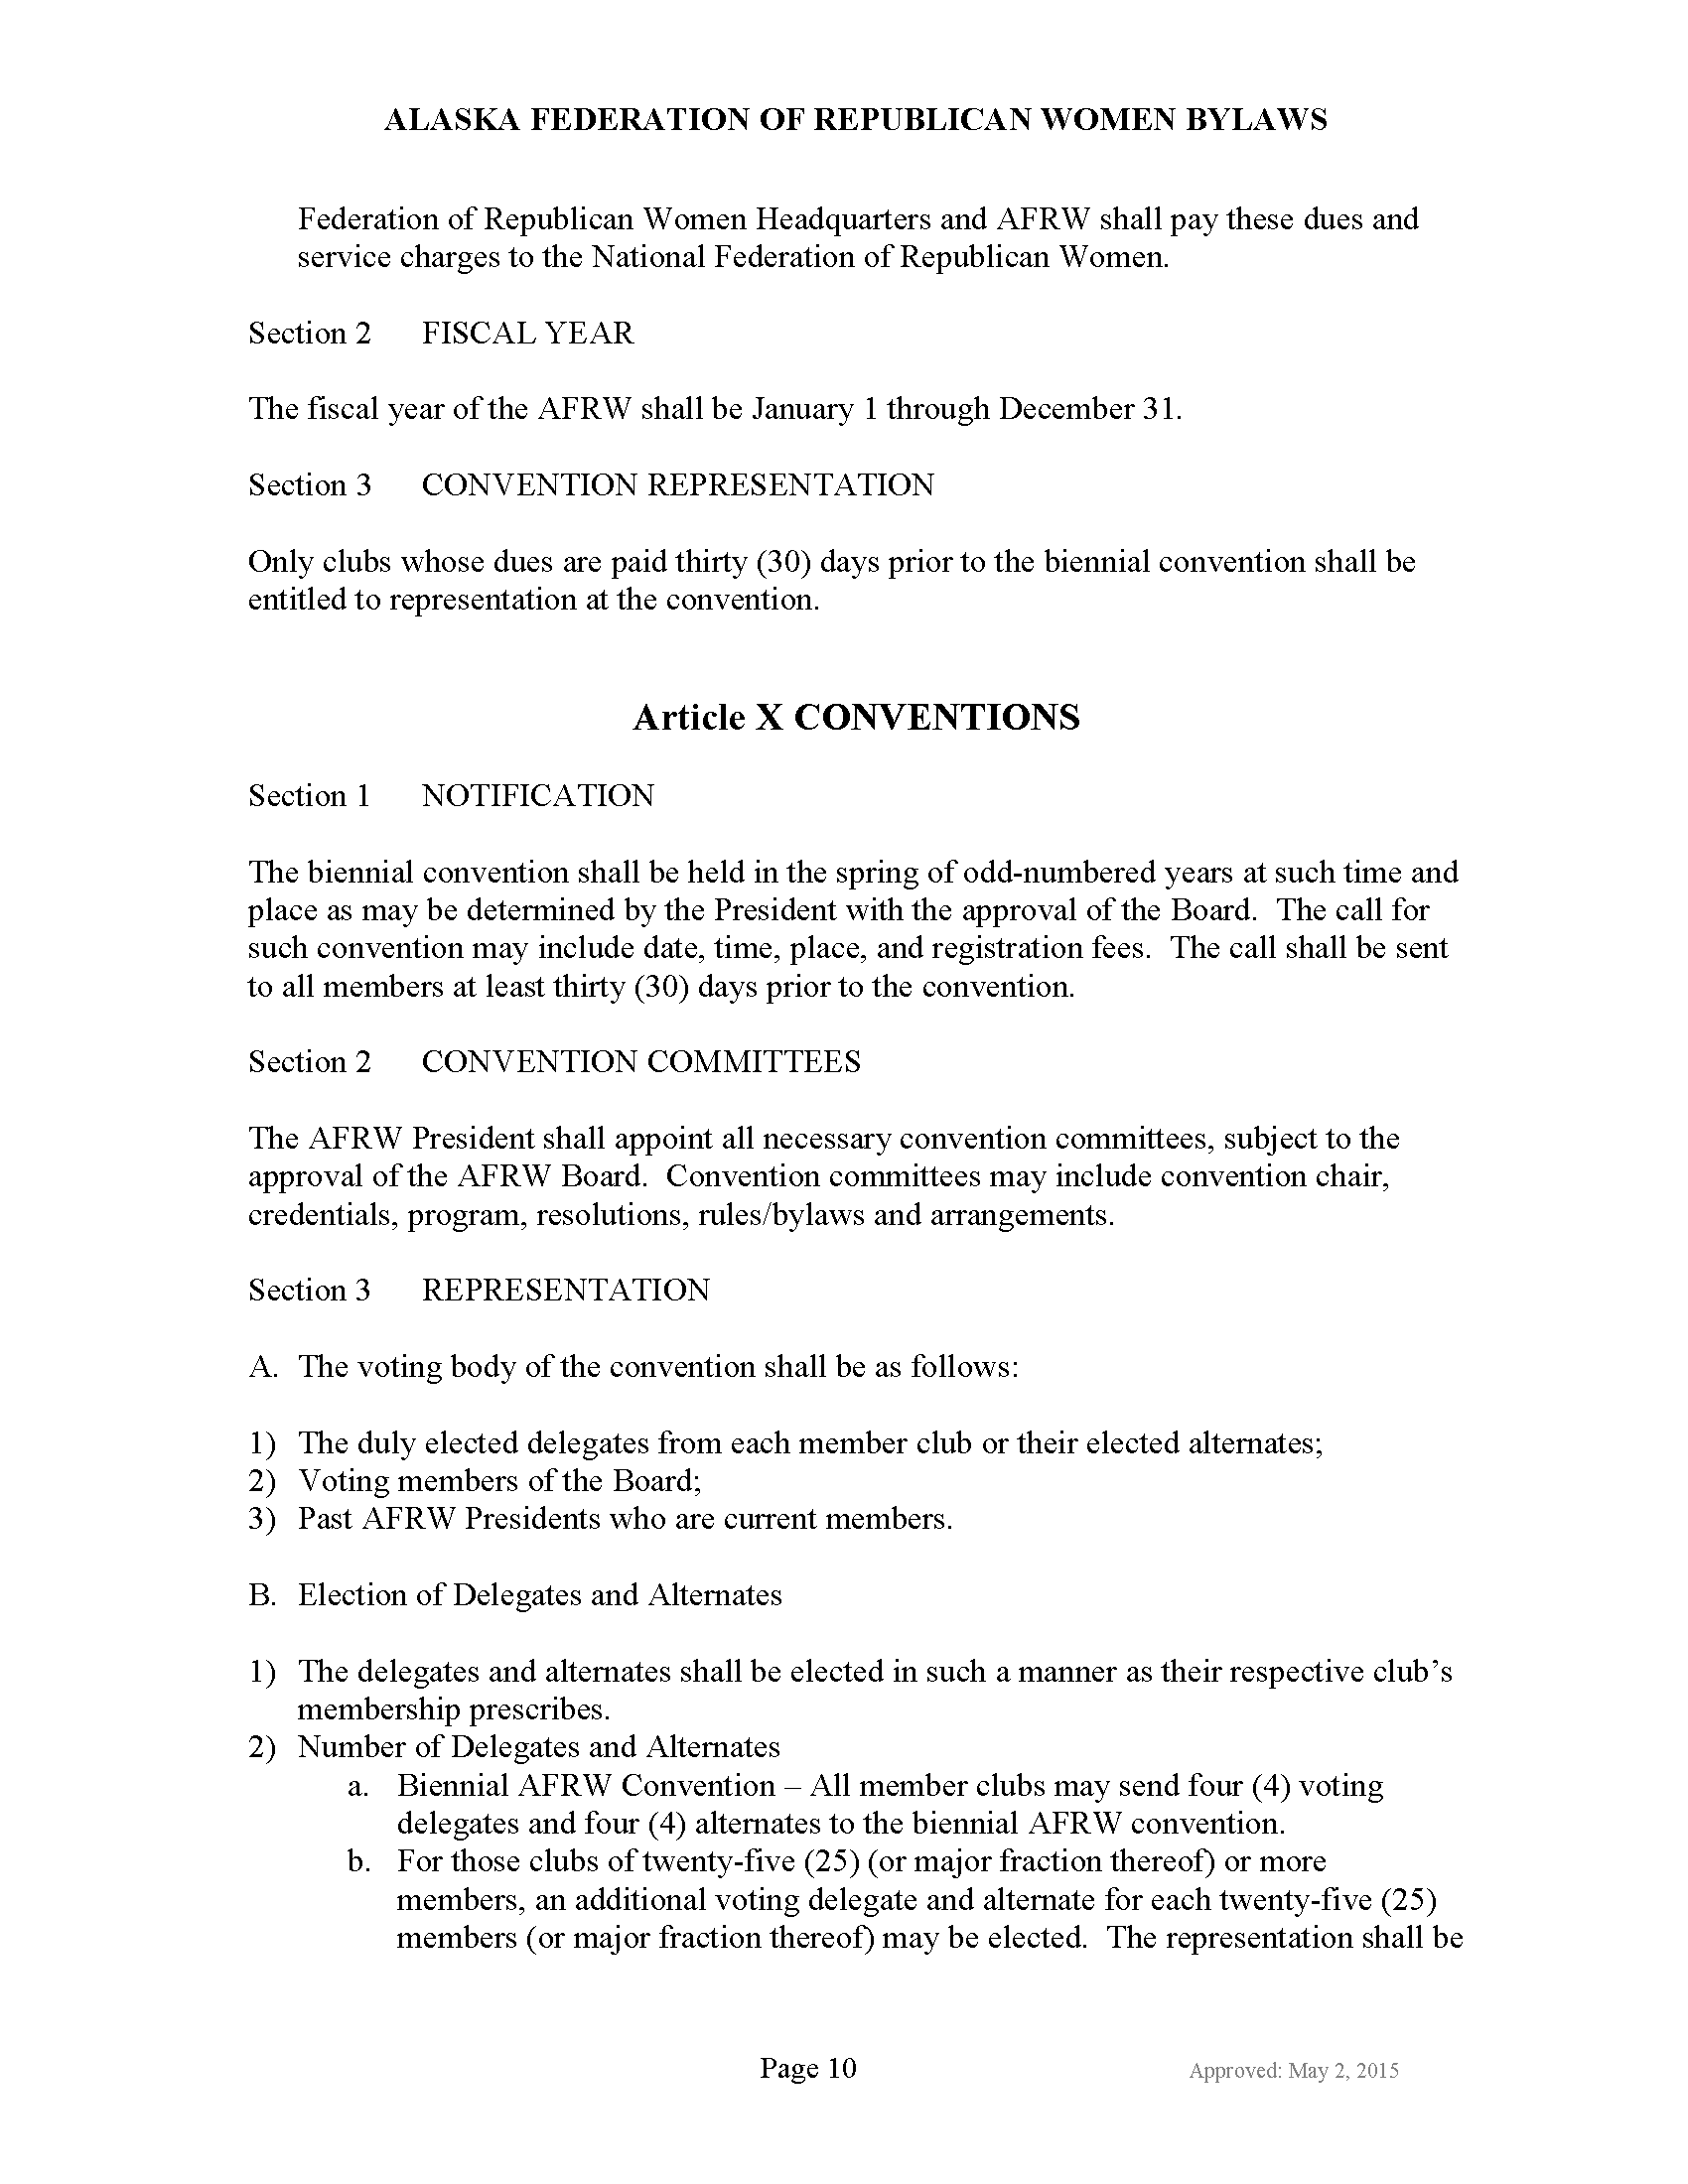 AFRW_Bylaws_ARWC_Approved_May_2__2015__(1)_Page_10.png